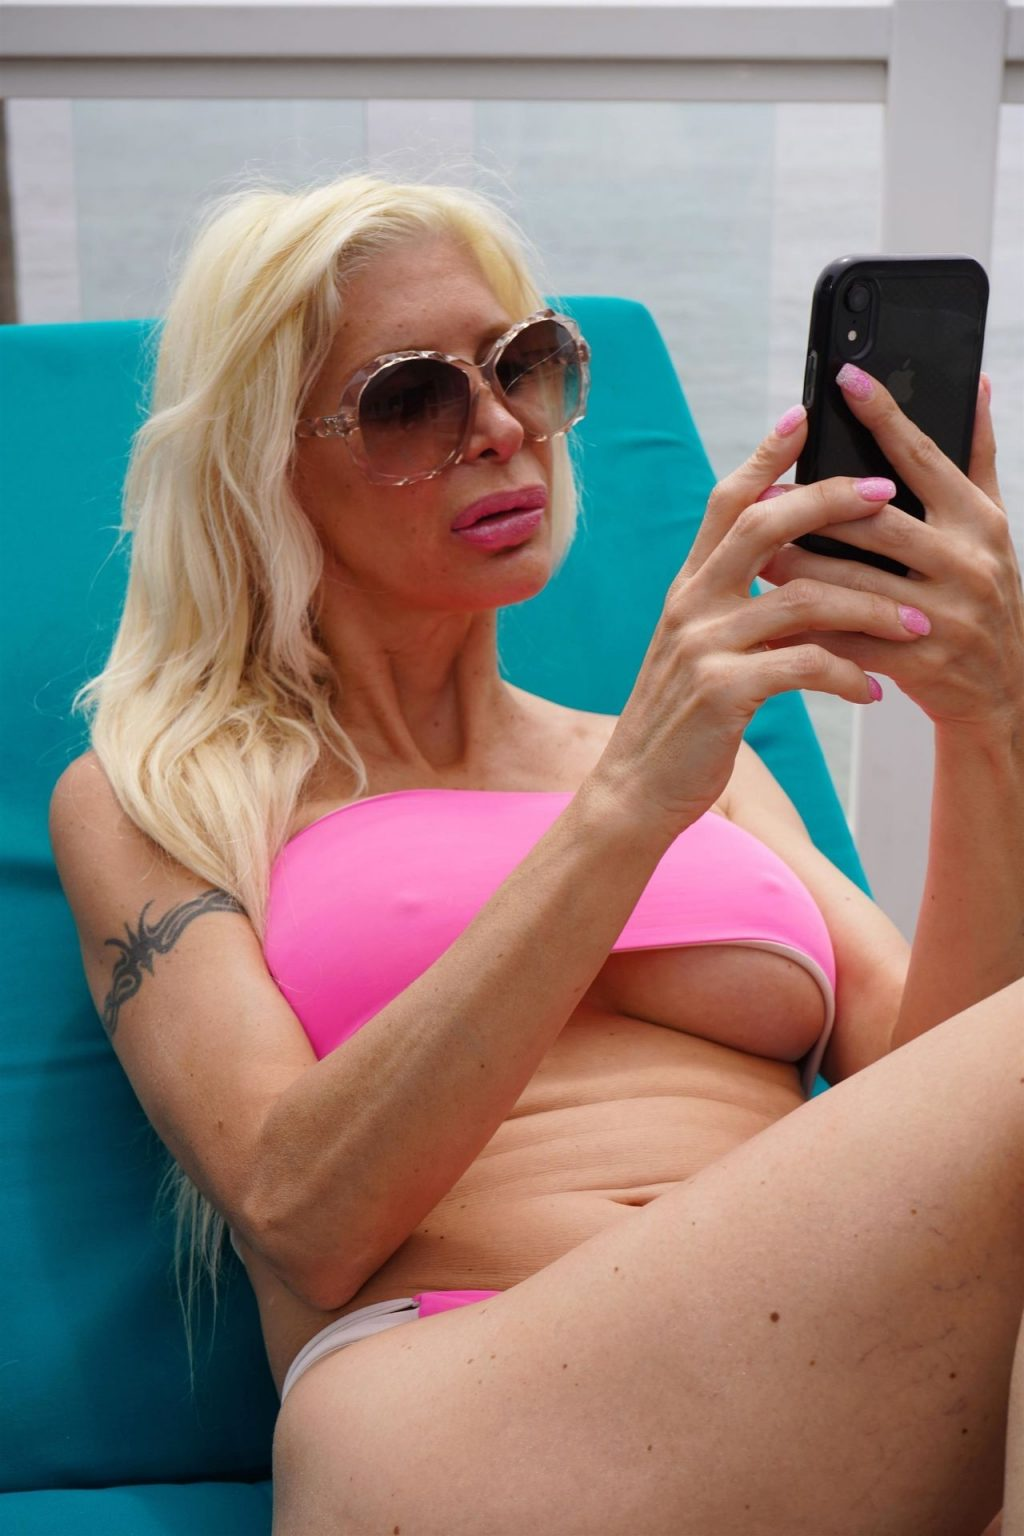 Angelique Morgan Gets Some Sun in a Pink Bikini (46 Photos)